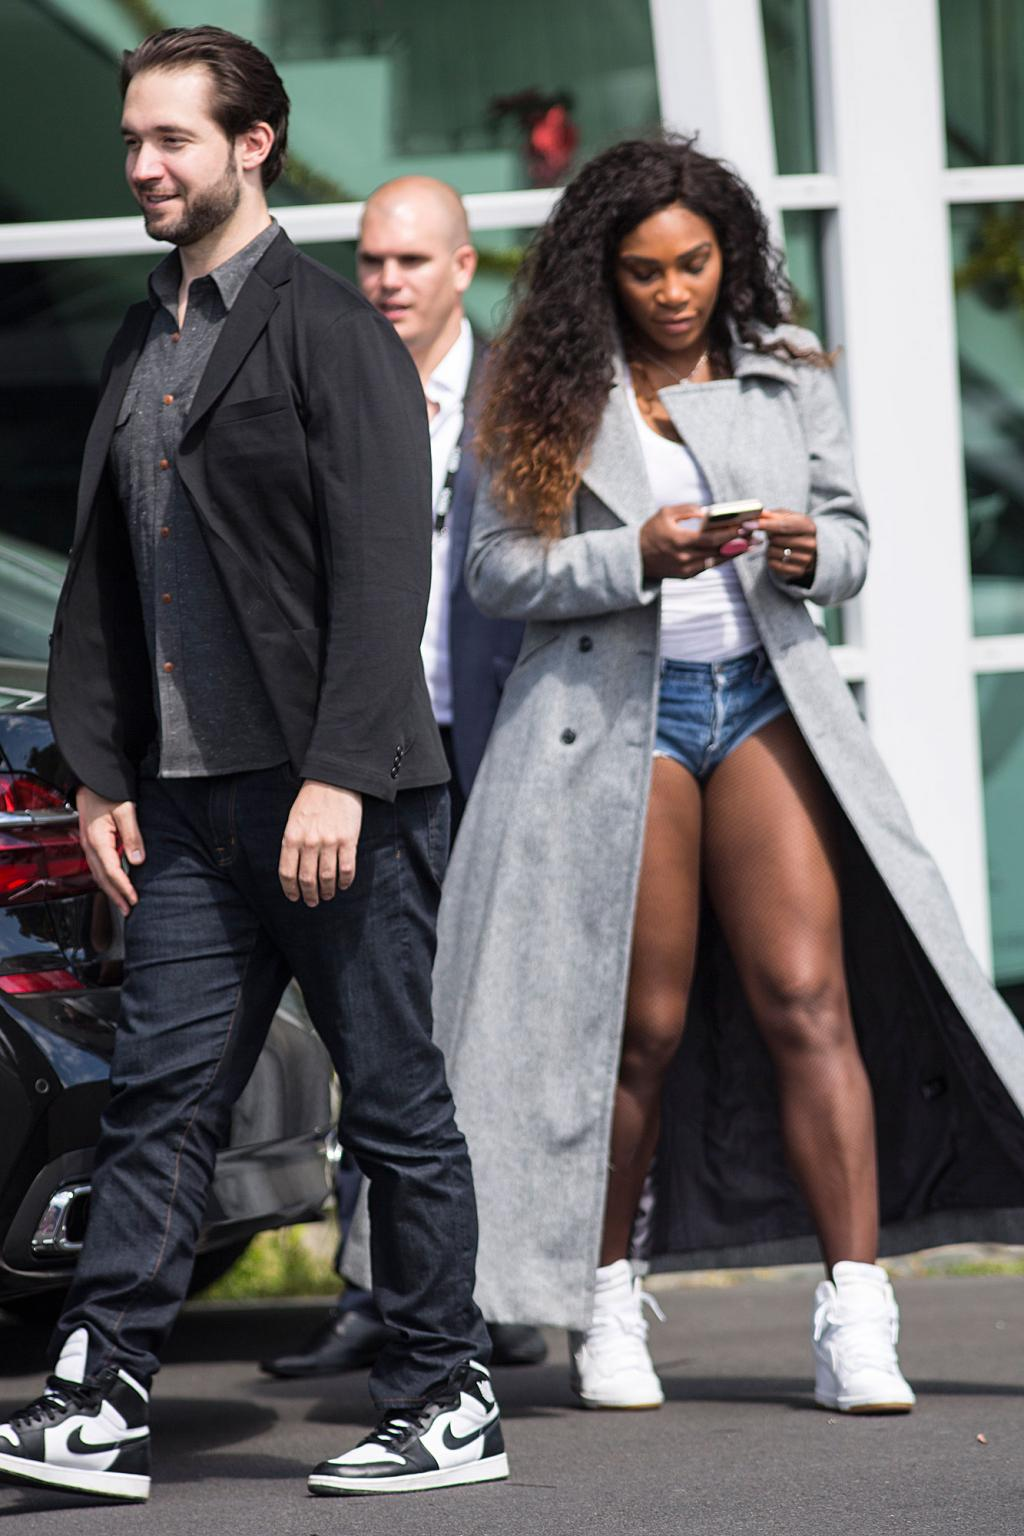 Serena Williams Debuts Engagement Ring from Fiancé Alexis Ohanian